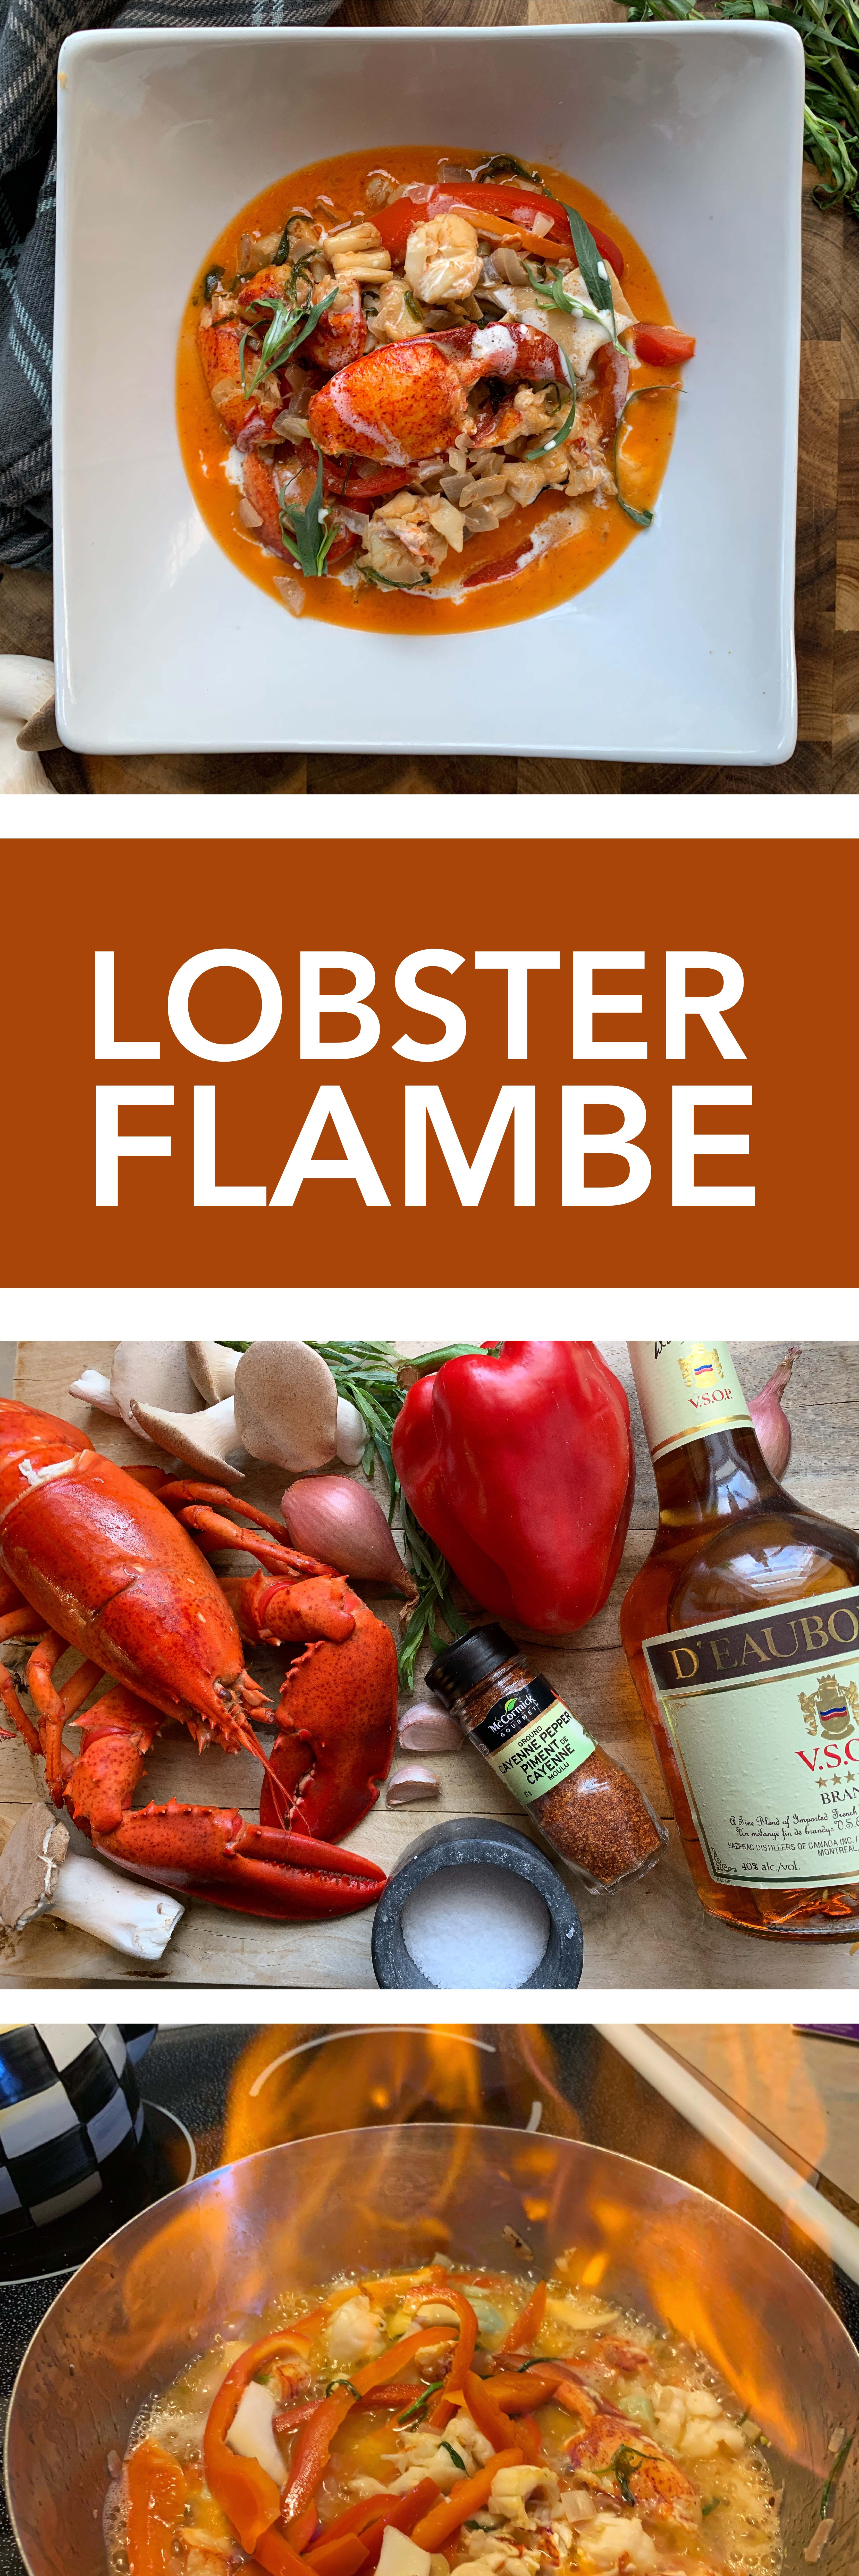 Lobster Flambe Stuffed Peppers Seafood Recipes Cooking